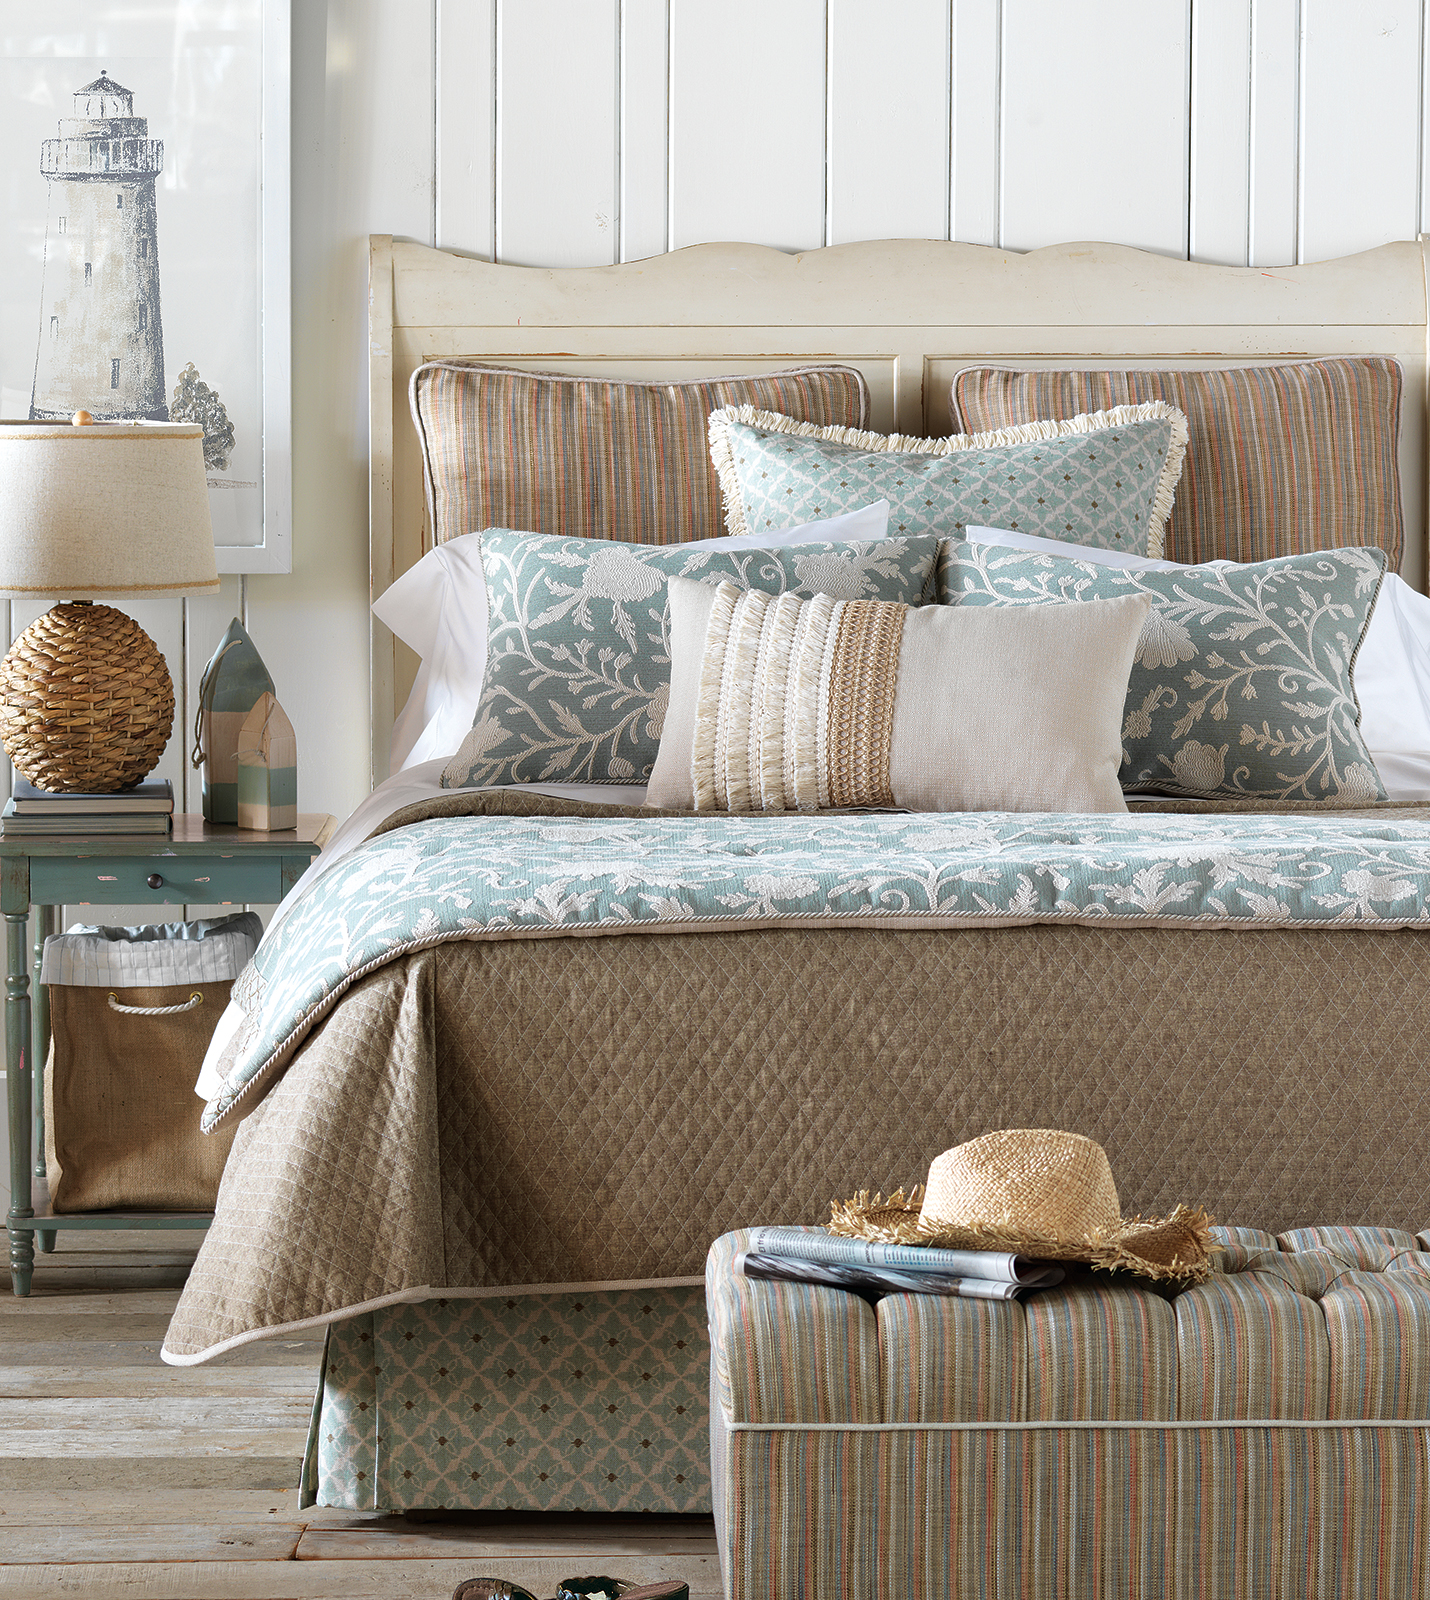 Luxury Bedding By Eastern Accents Avila Collection